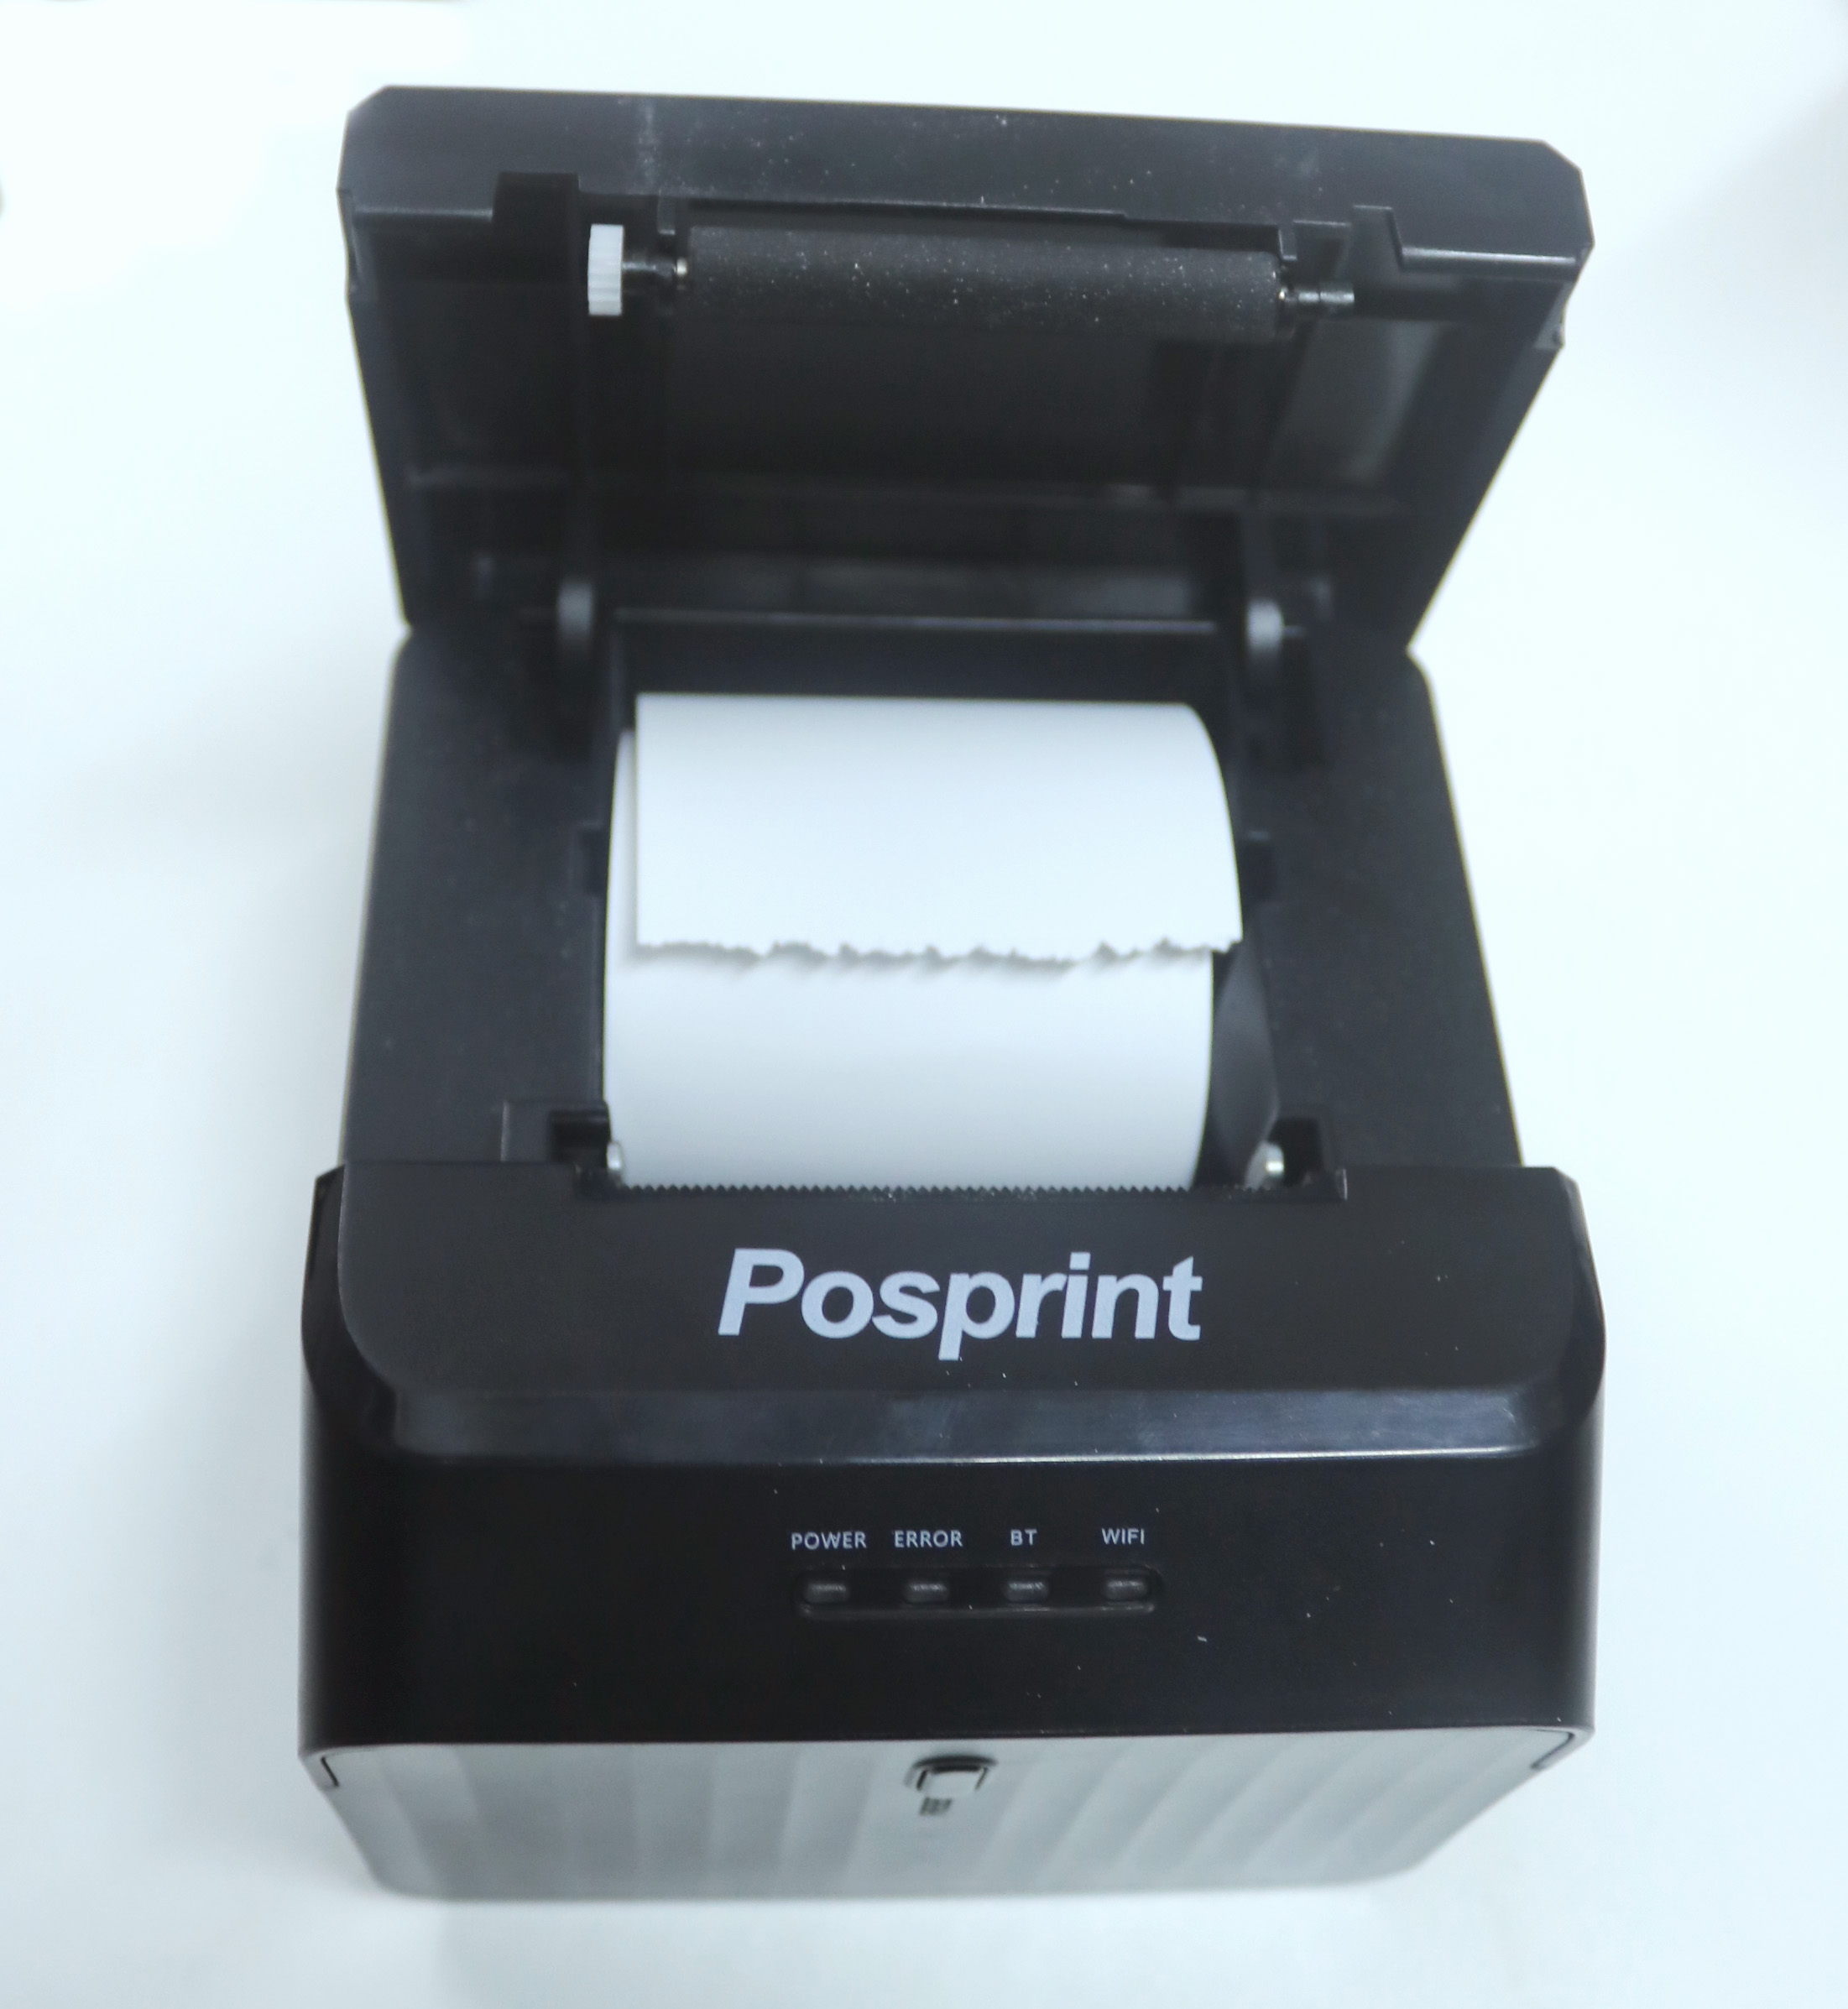 POSPRINT Kiosk USB 58mm(2inch) Portable Receipt Printer With High Speed Printing Compatible With ESC/POS Print Commands Set, Eas